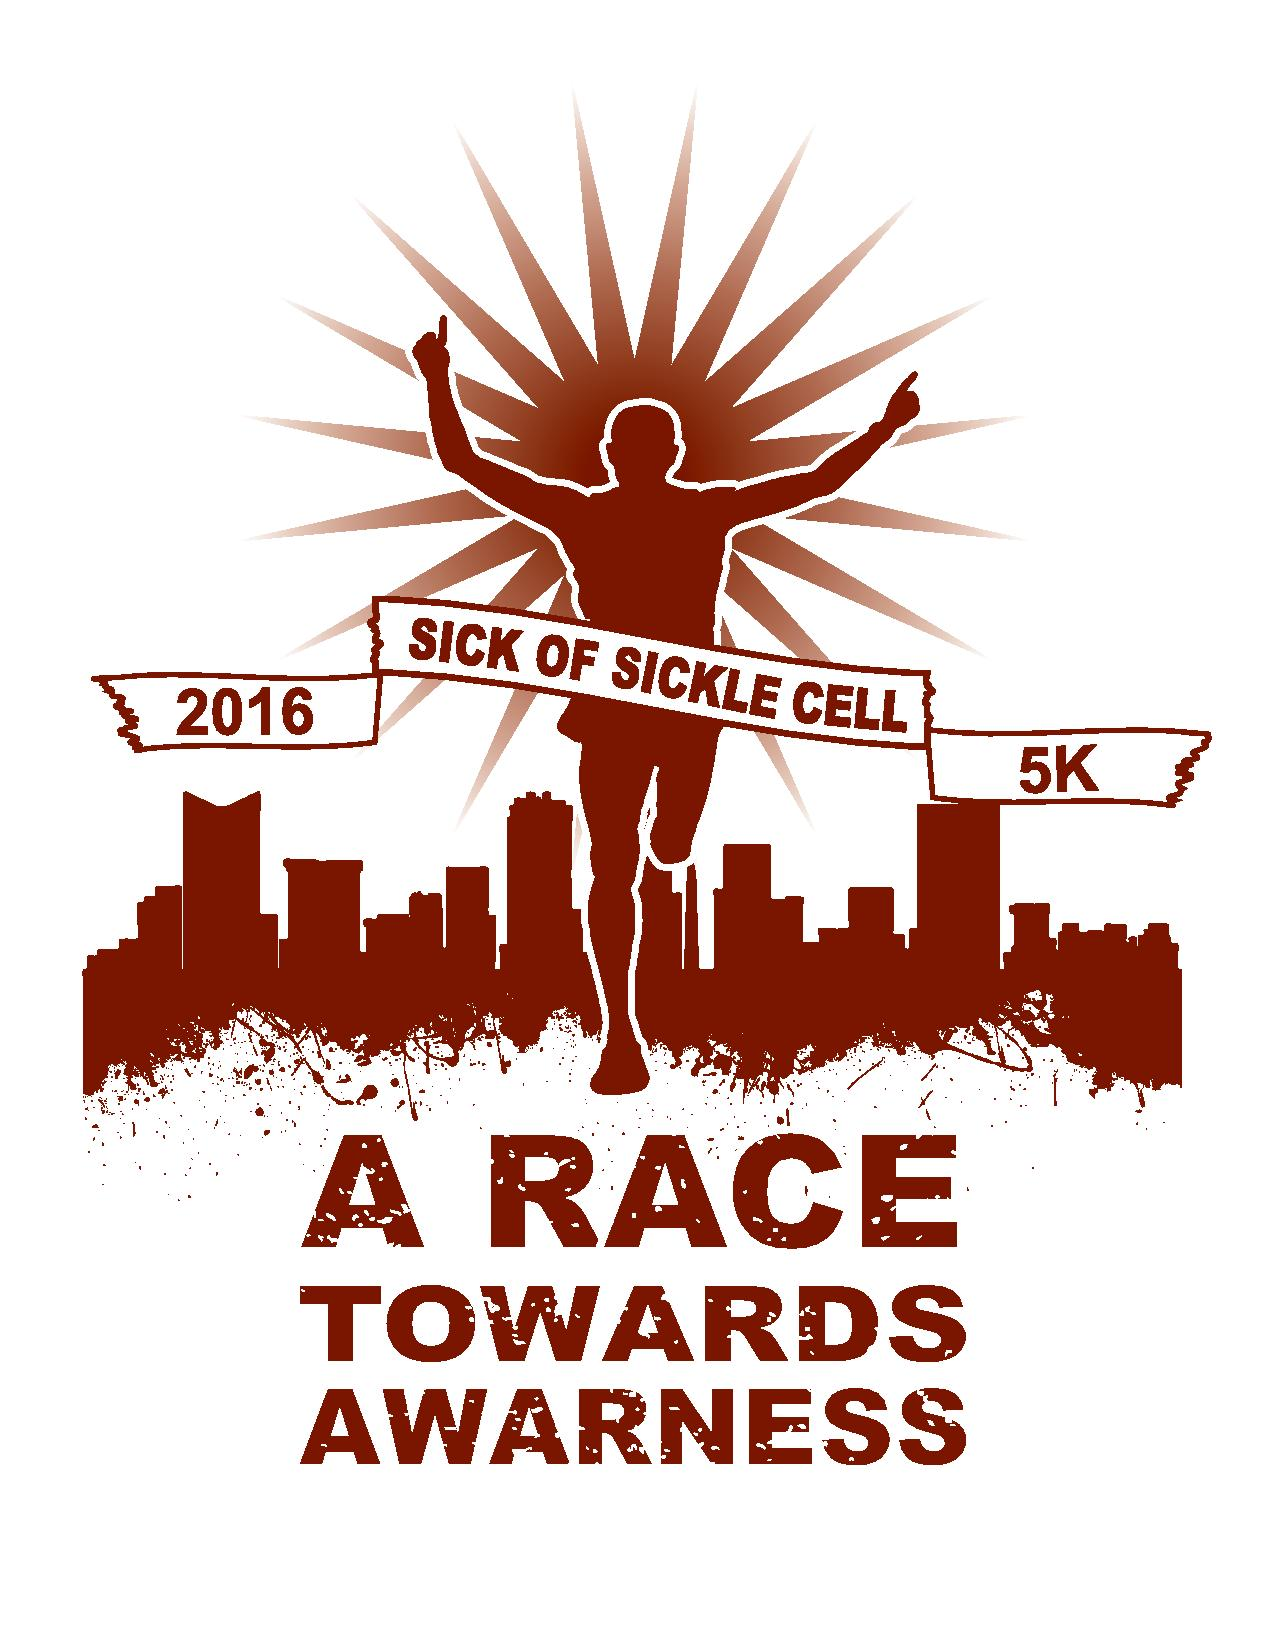 Sick of Sickle Cell Run